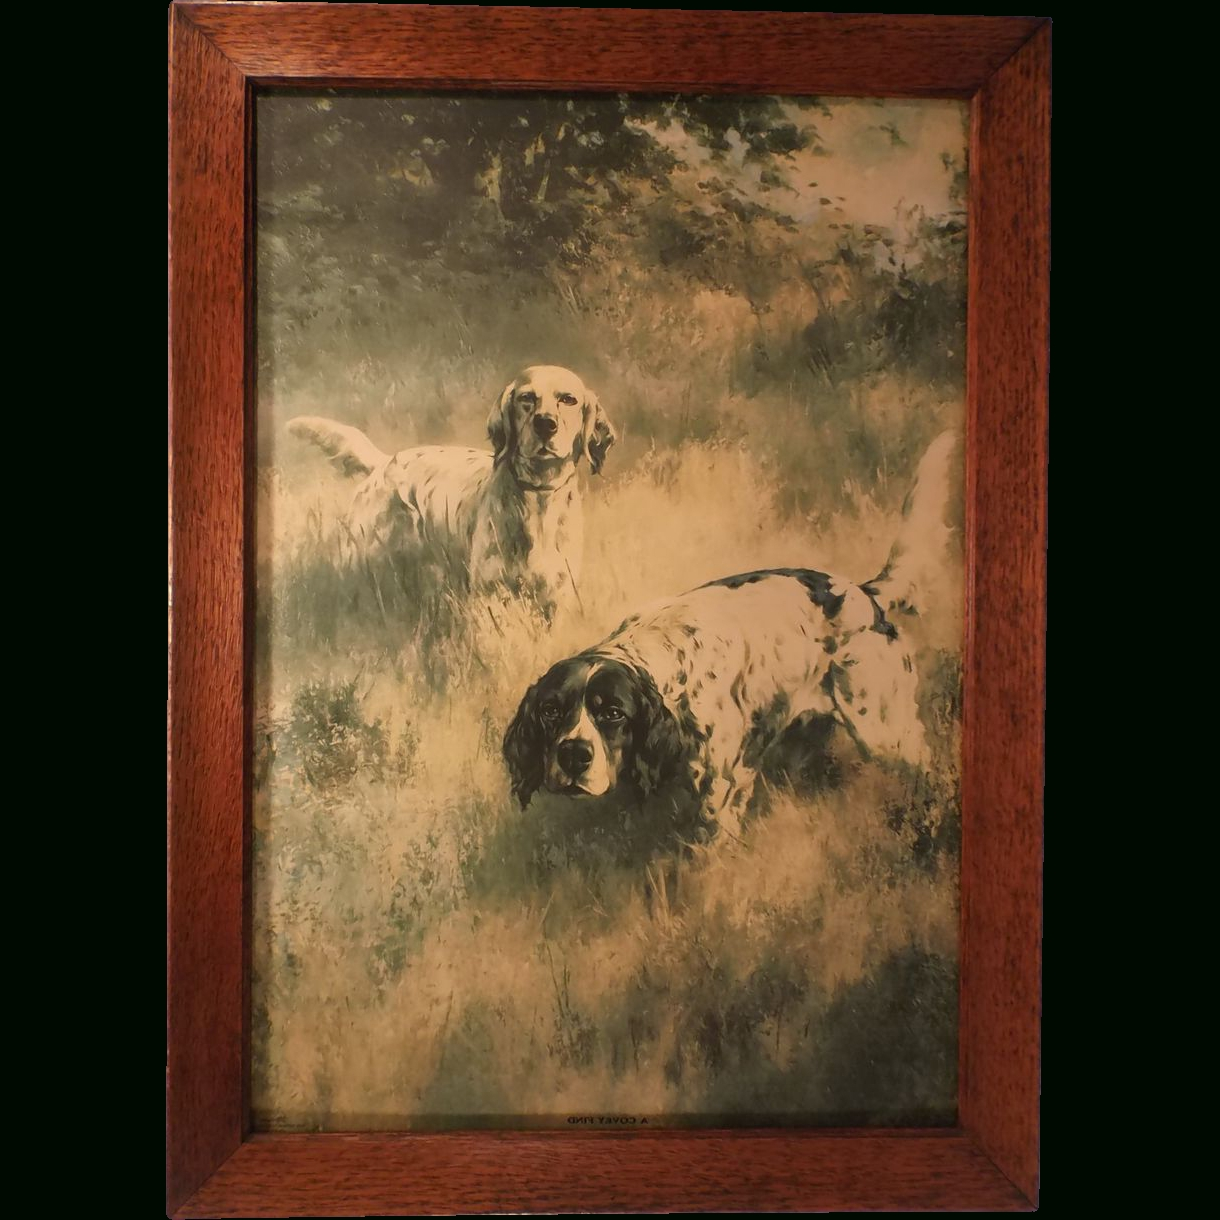 A Covey Find, Vintage Fine Art Framed Hunting Dog Print, Percival For Most Recently Released Dog Art Framed Prints (View 1 of 15)